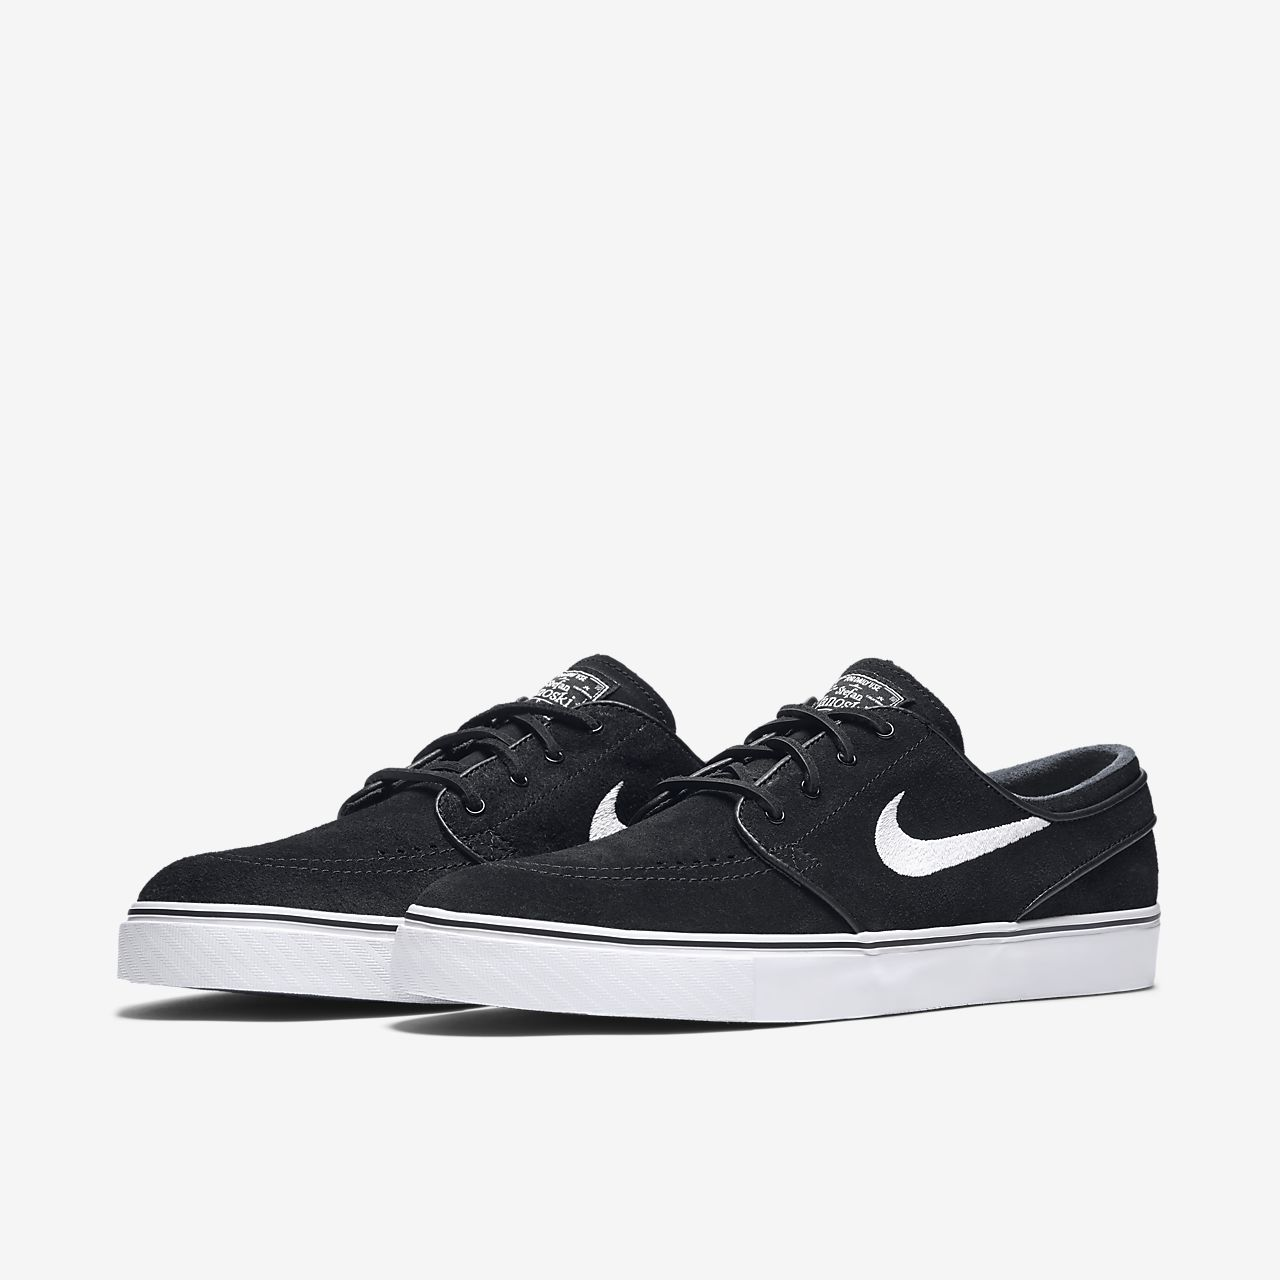 nike shoes janoski men's 862477